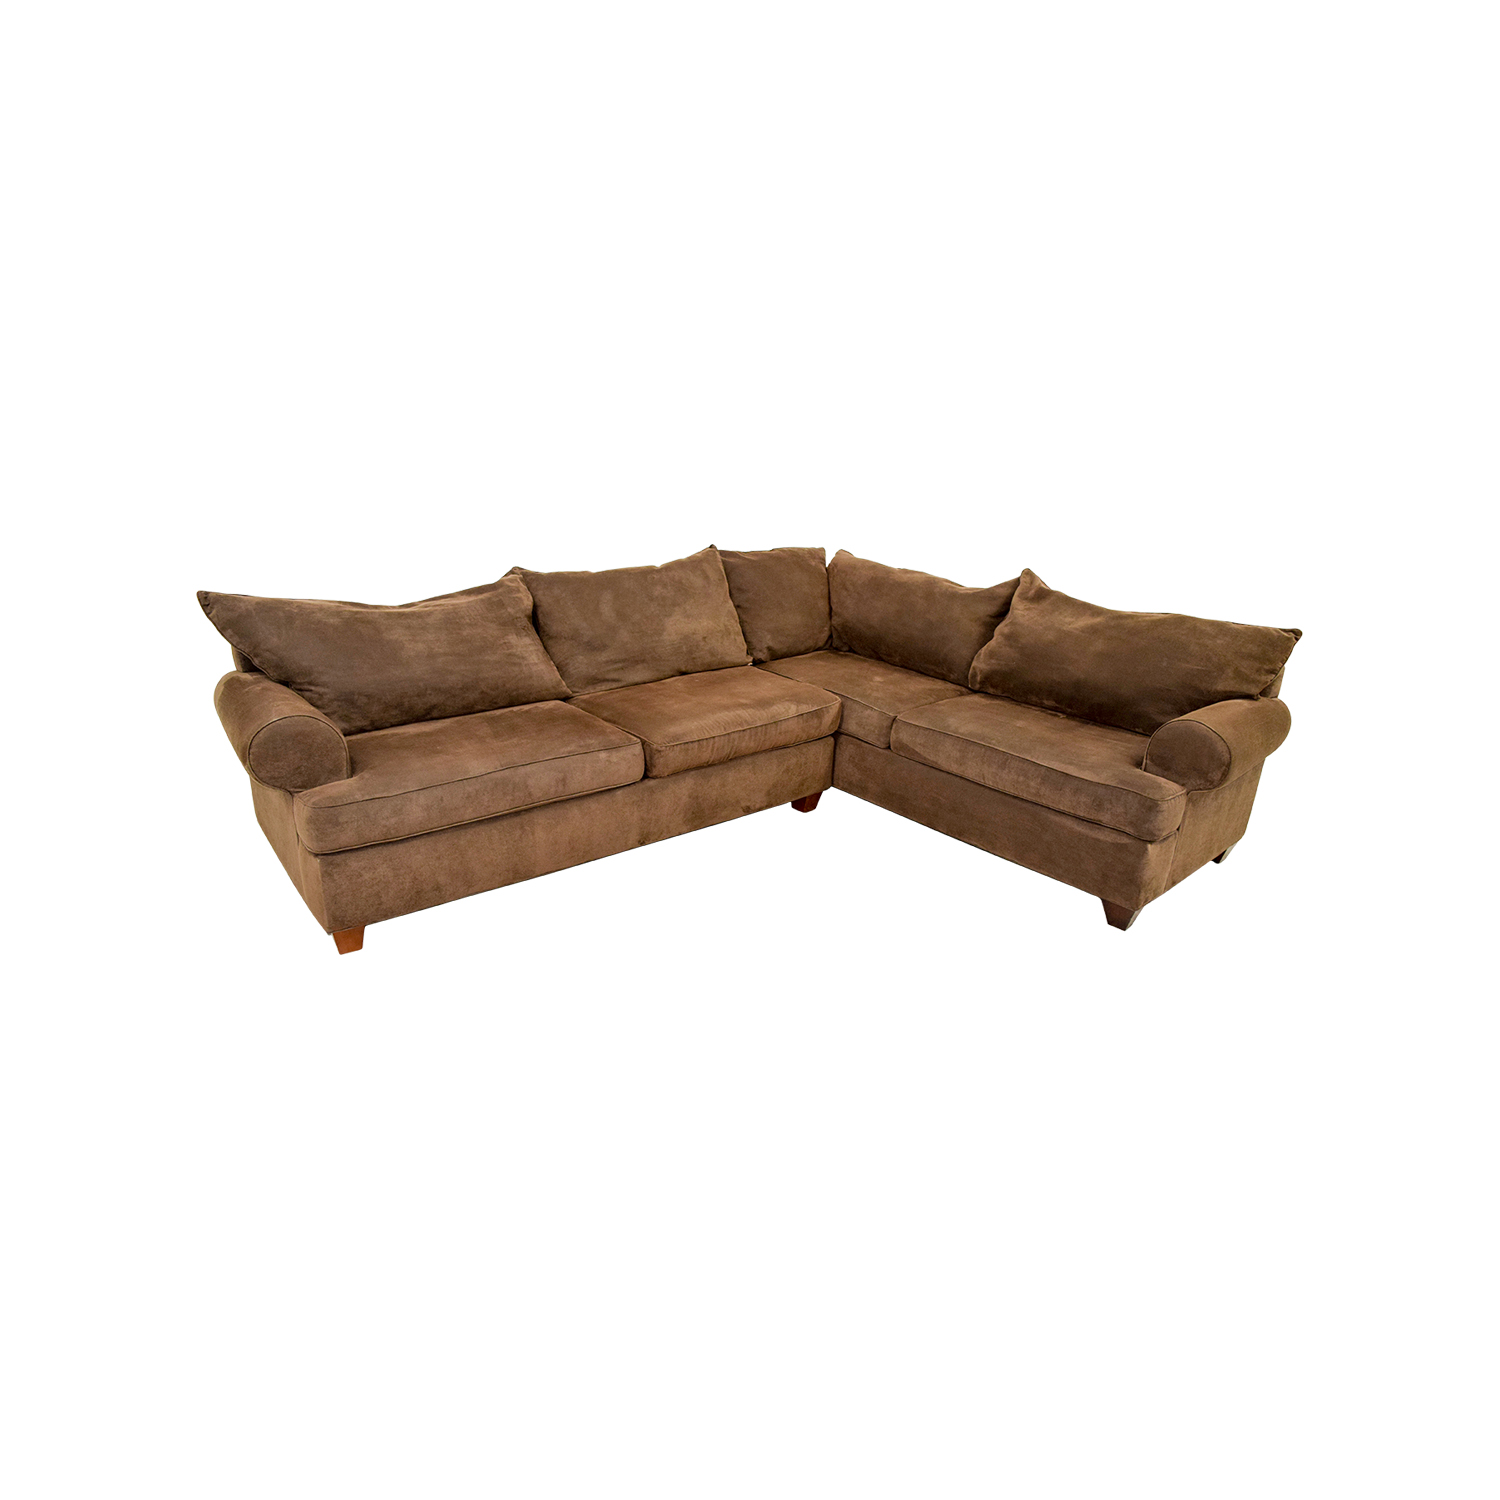 Brown Corduroy L-Shaped Sectional Couch nyc